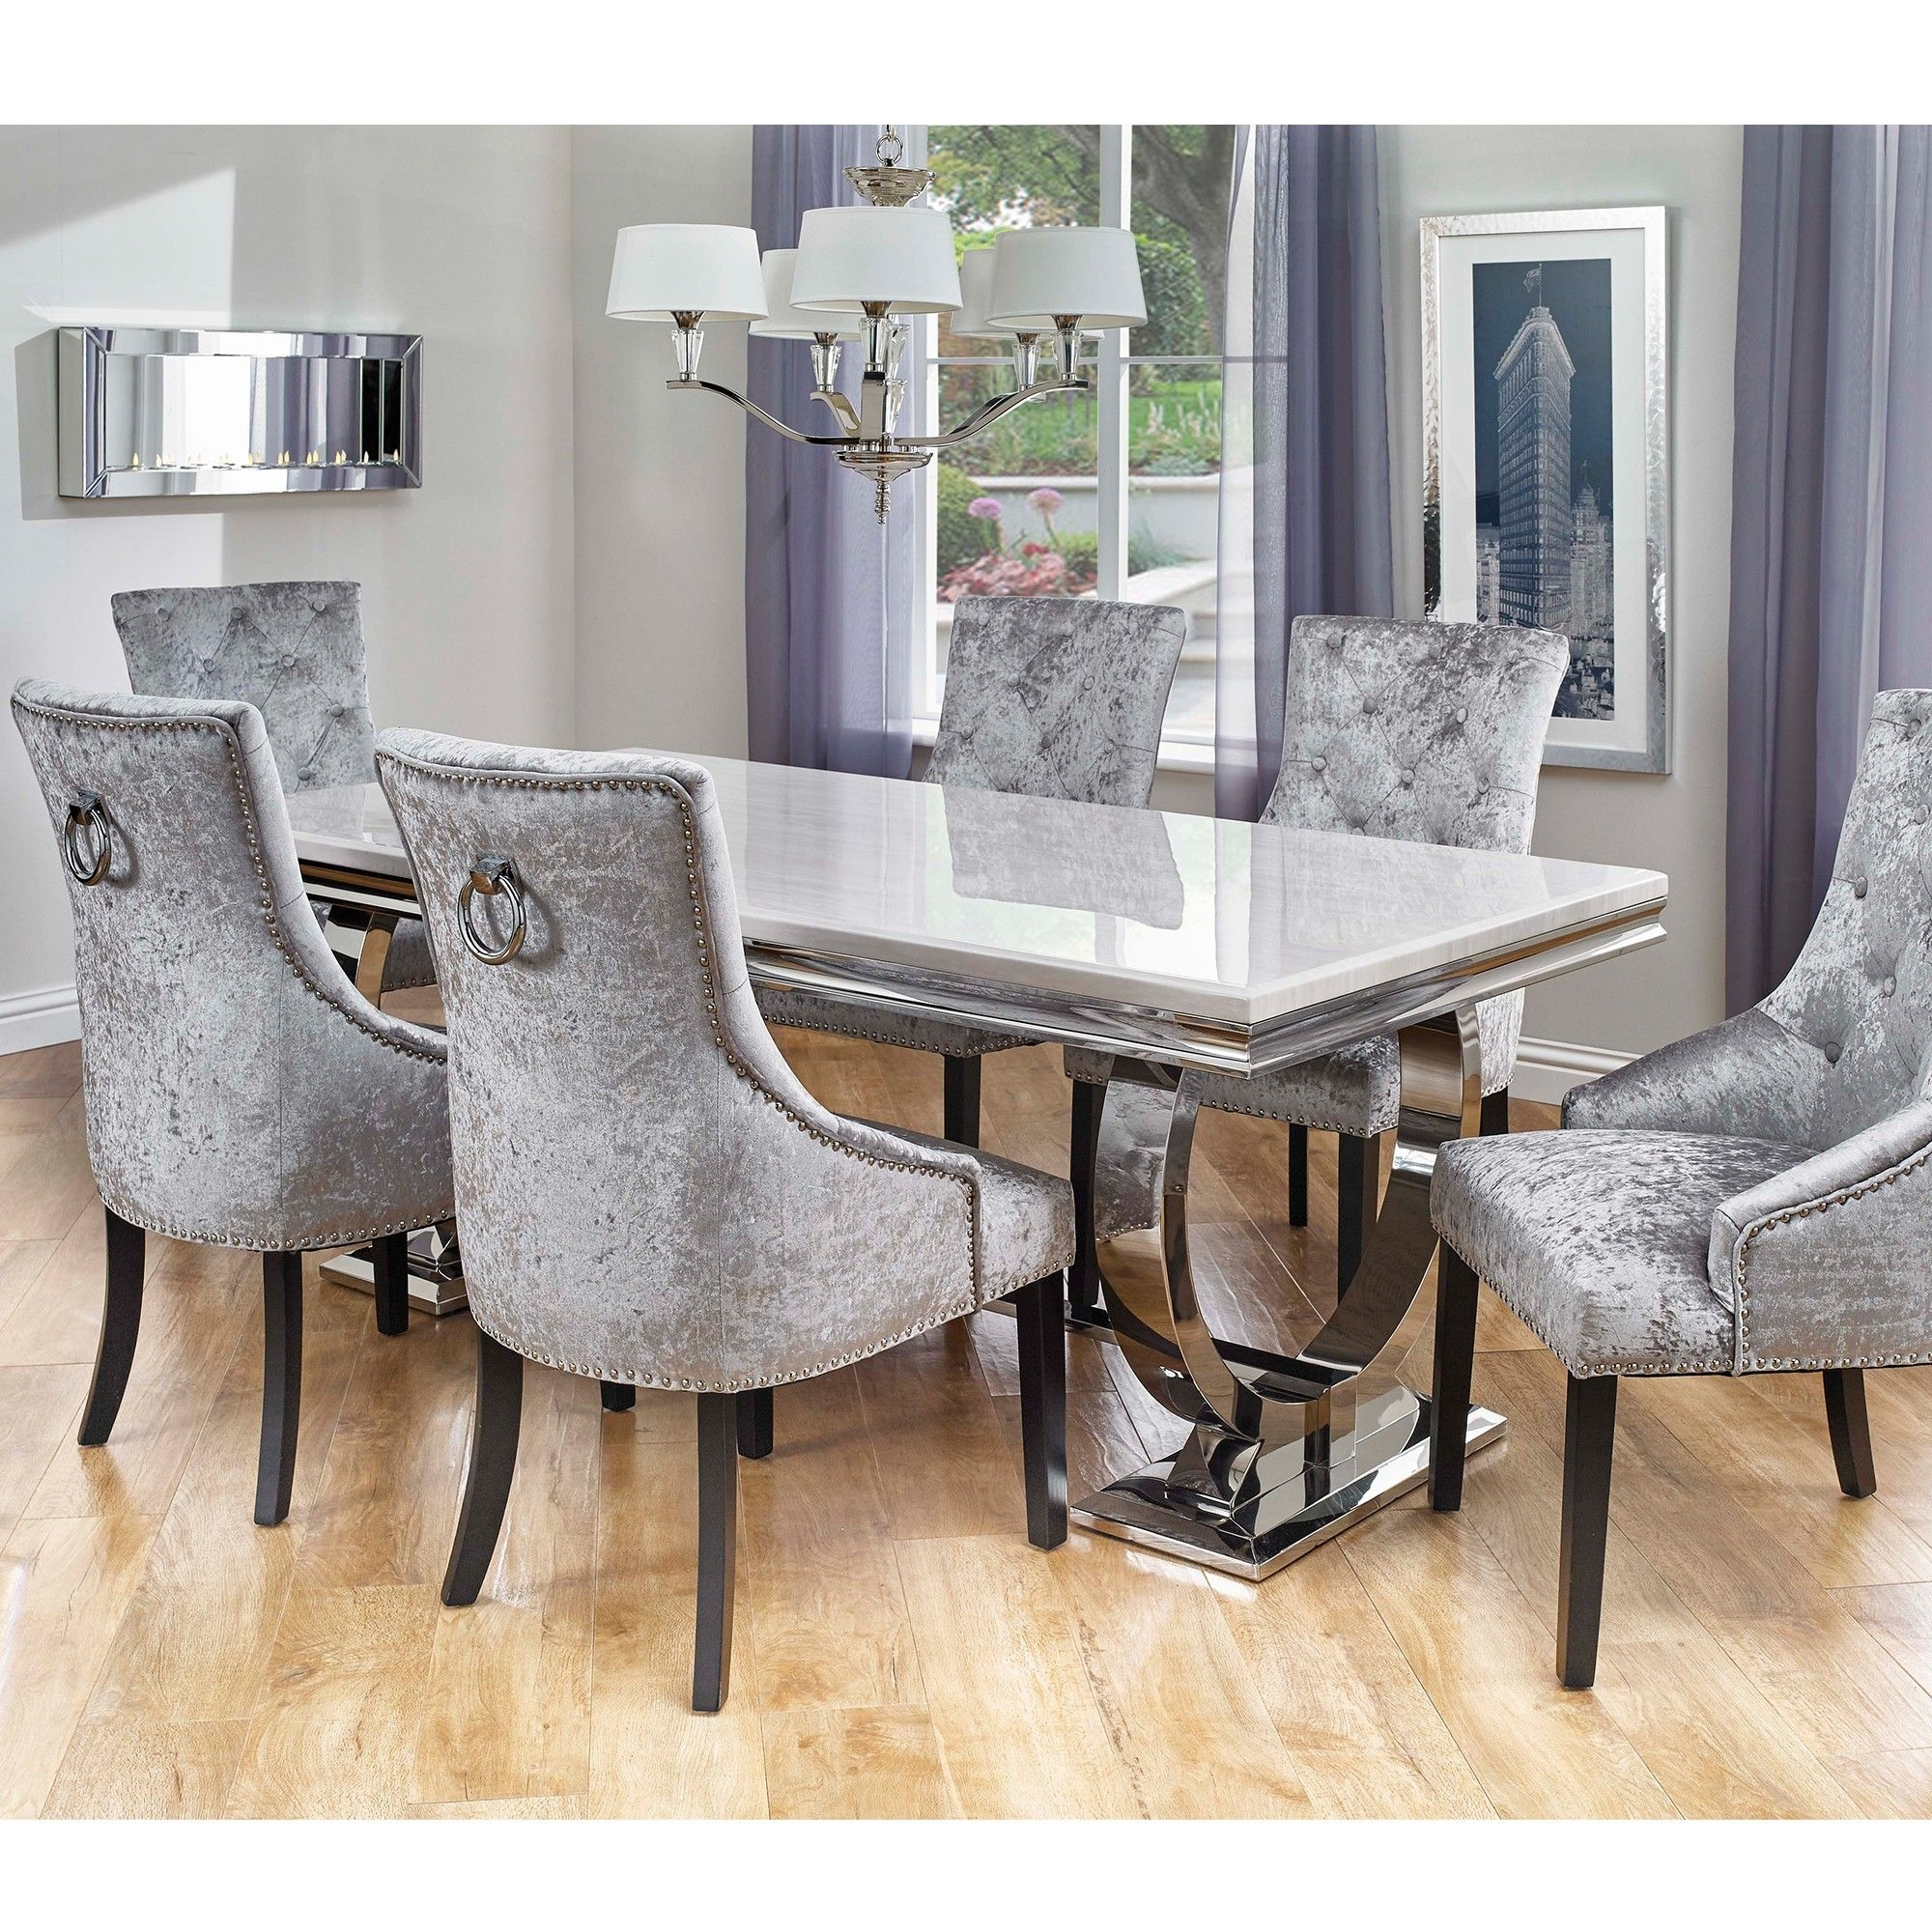 Pinbesthomezone On Dining Room & Bar Furniture | Pinterest For Newest Palazzo 7 Piece Rectangle Dining Sets With Joss Side Chairs (Photo 6 of 20)